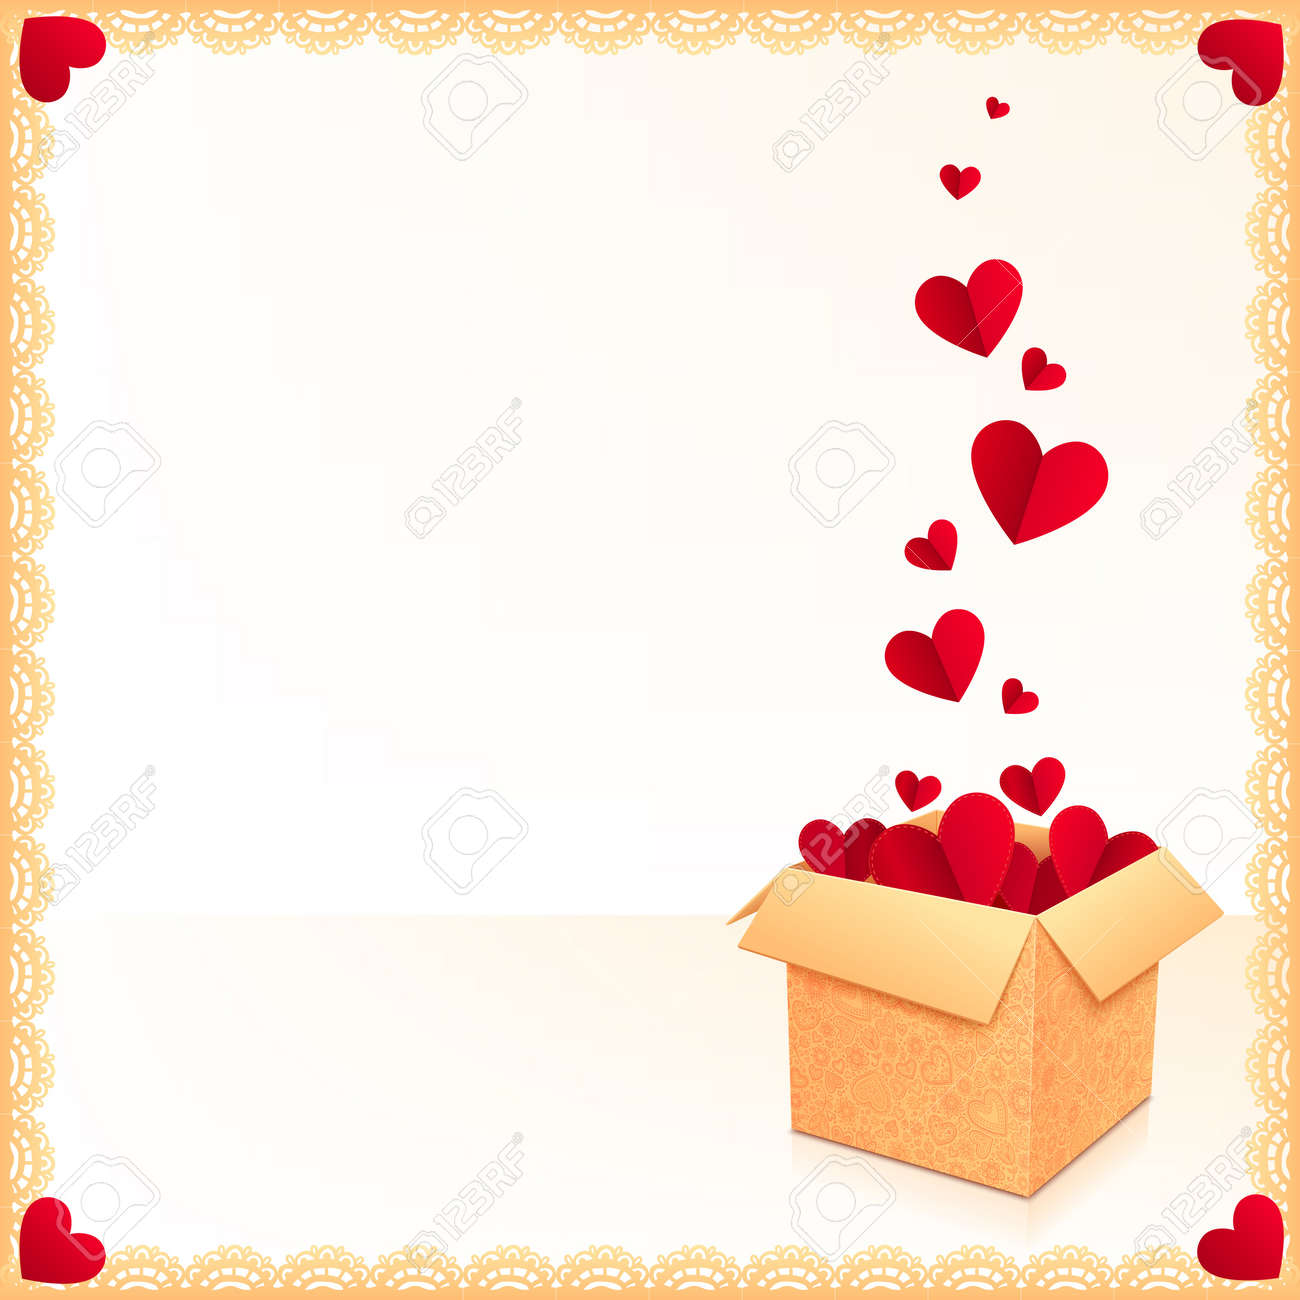 Greeting card with ornate box of red hearts and lacy frame Stock Vector - 17350370